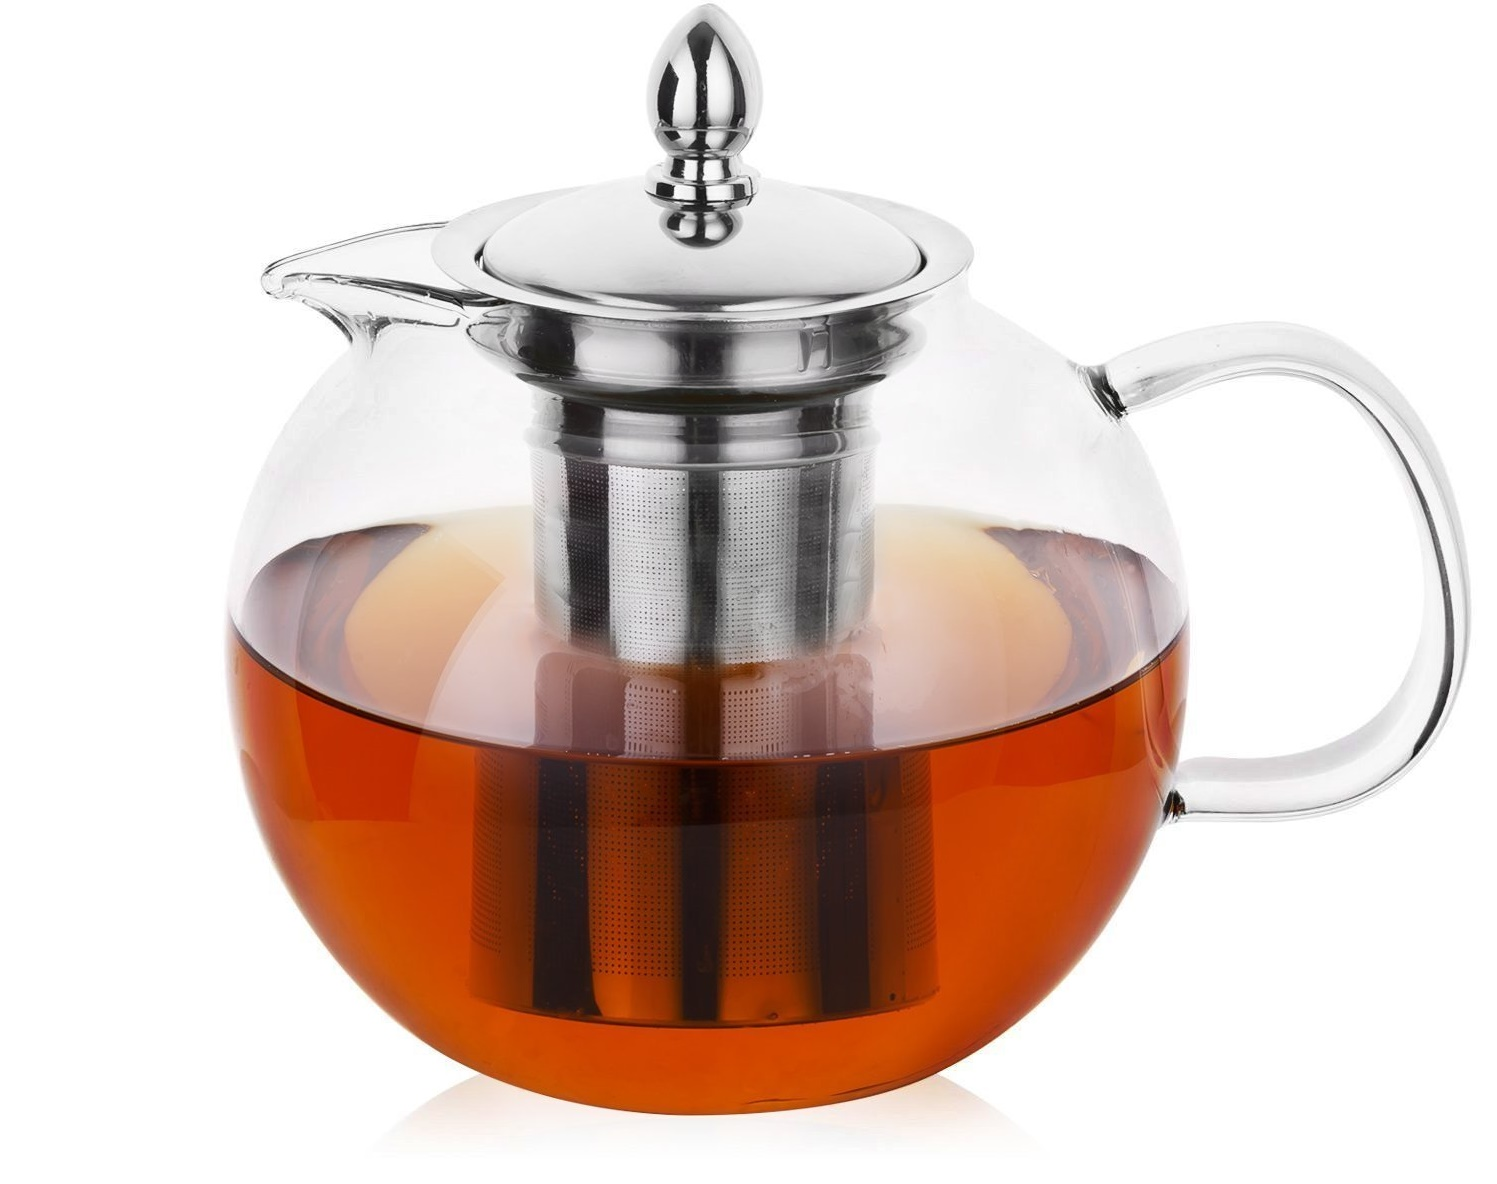 Grab A Cuppa Best Teapots And Kettles 2019 The Kitchen